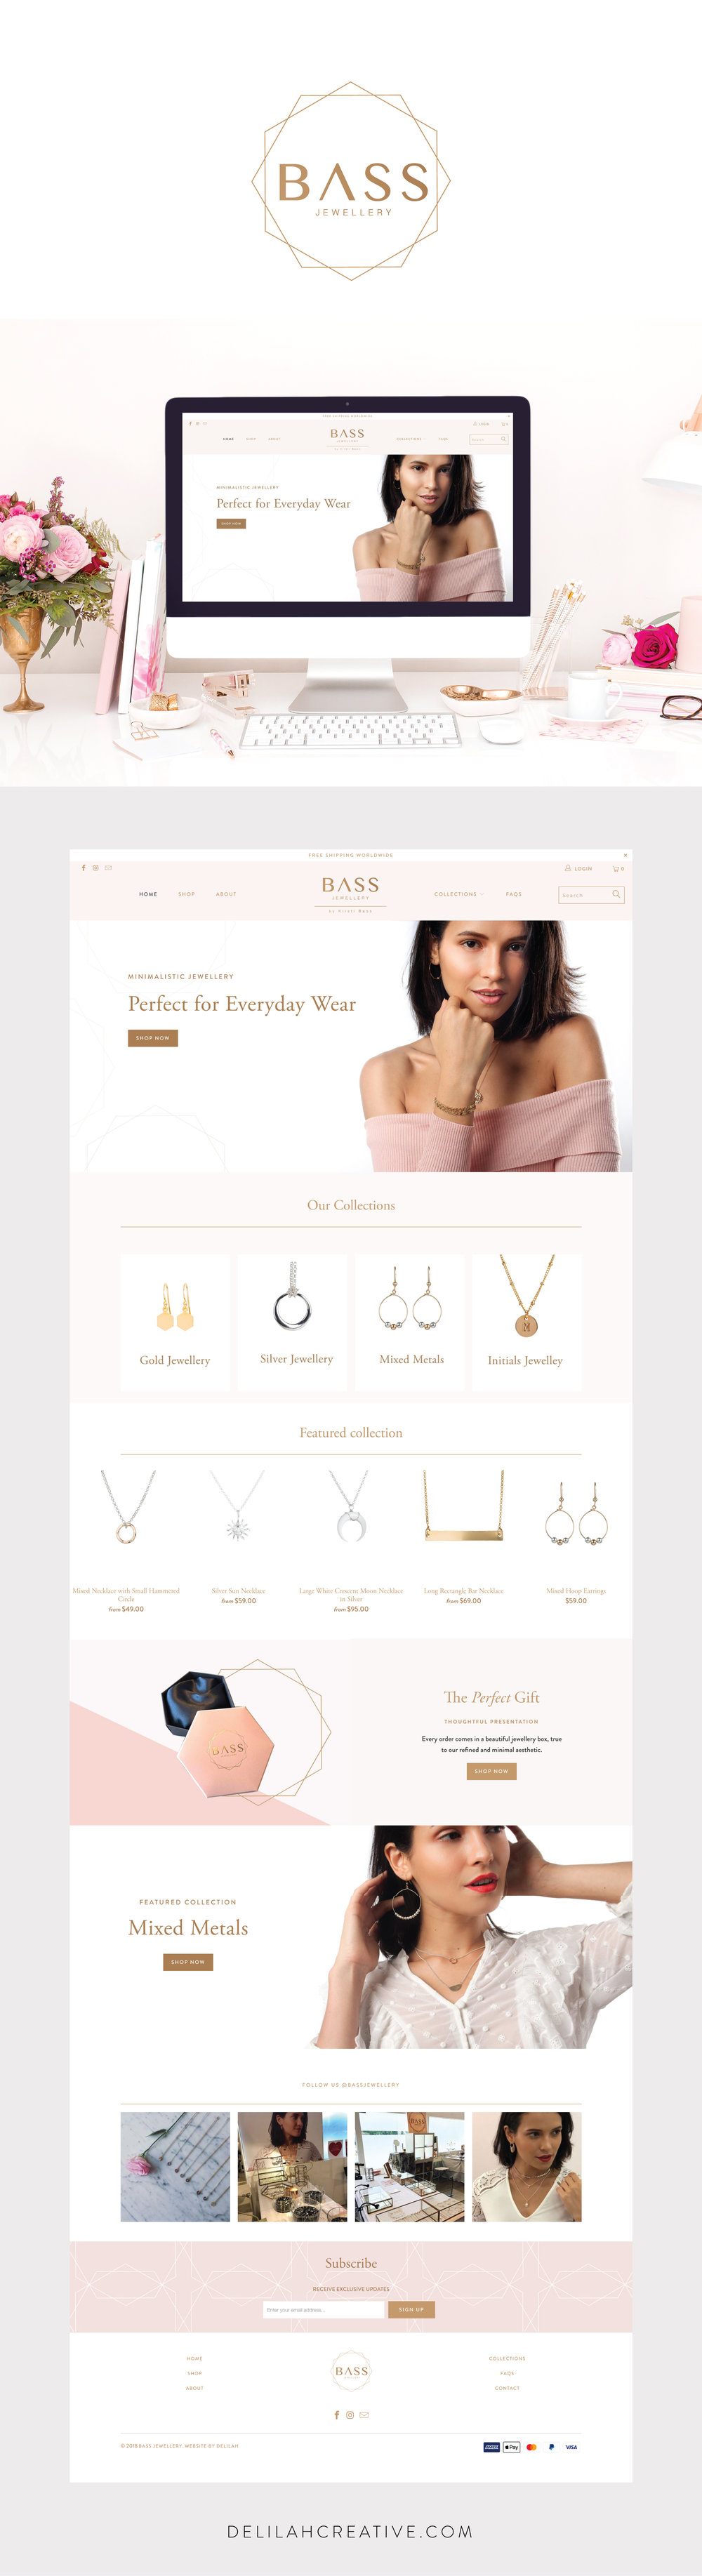 Bass-Jewellery-Delilah-Shopify.jpg